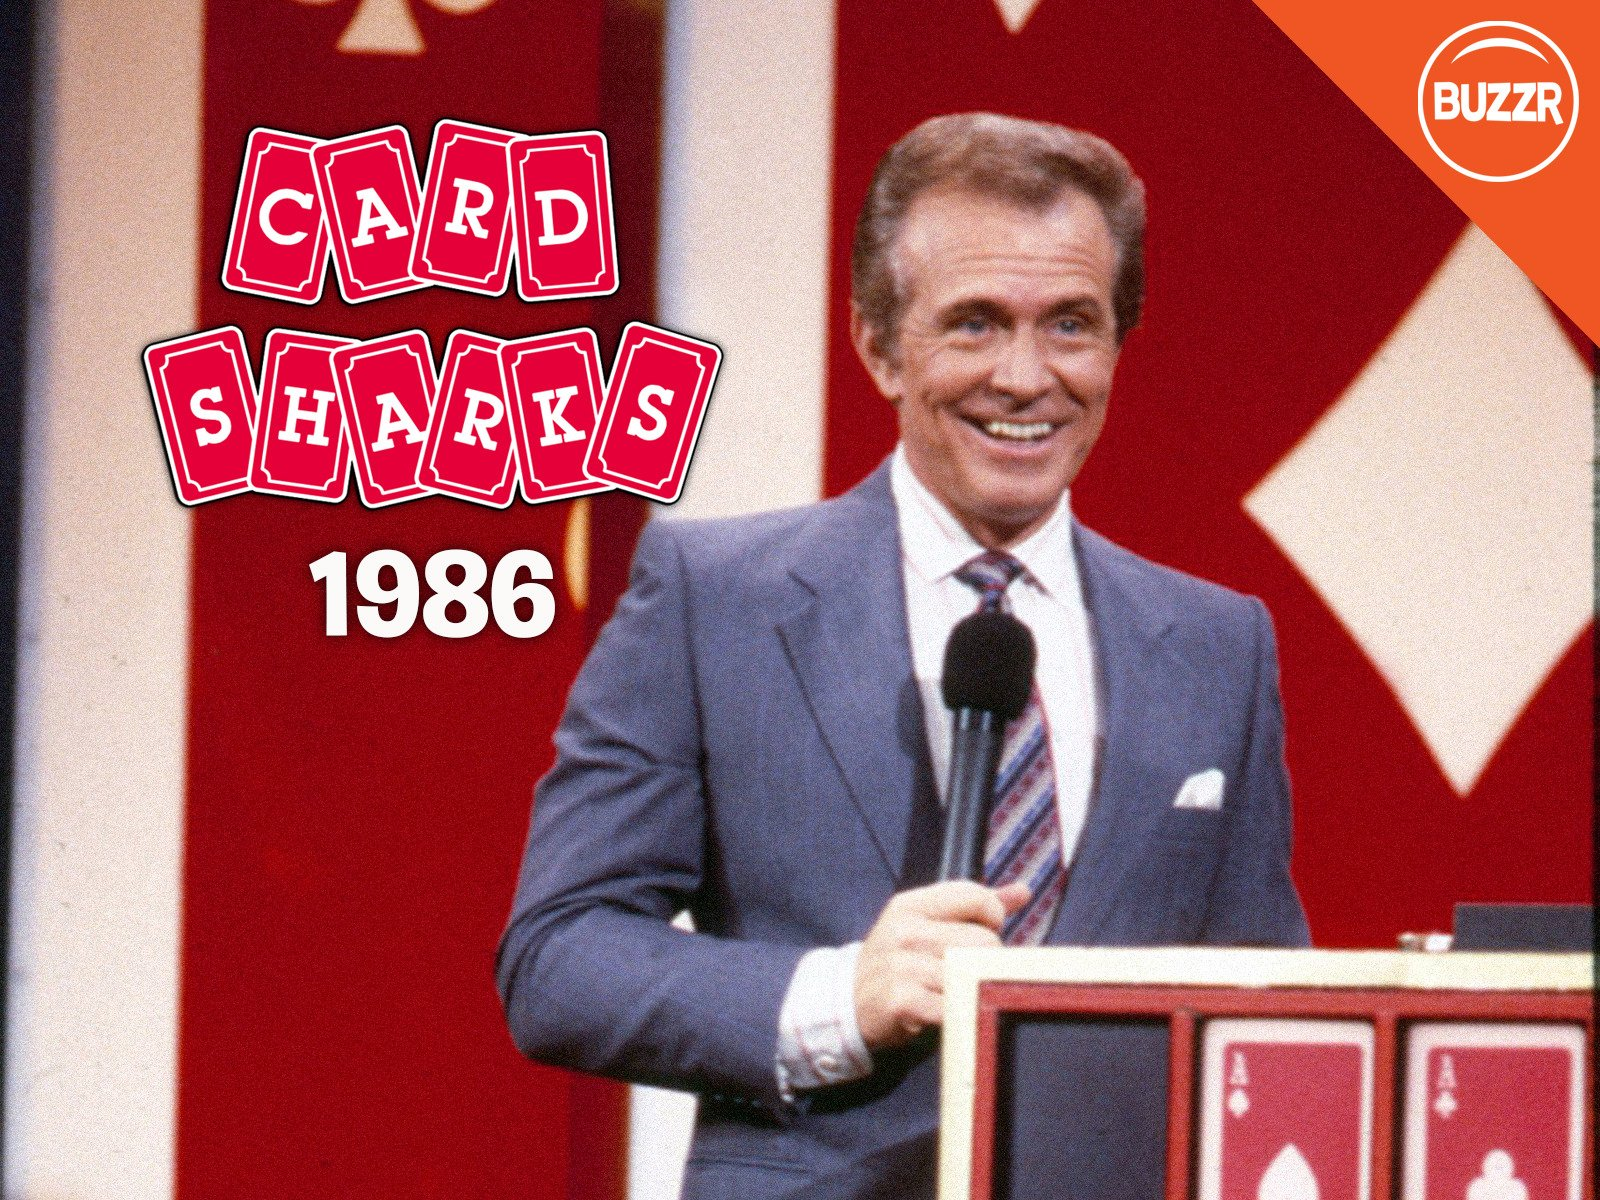 Card Sharks 86 - Season 1